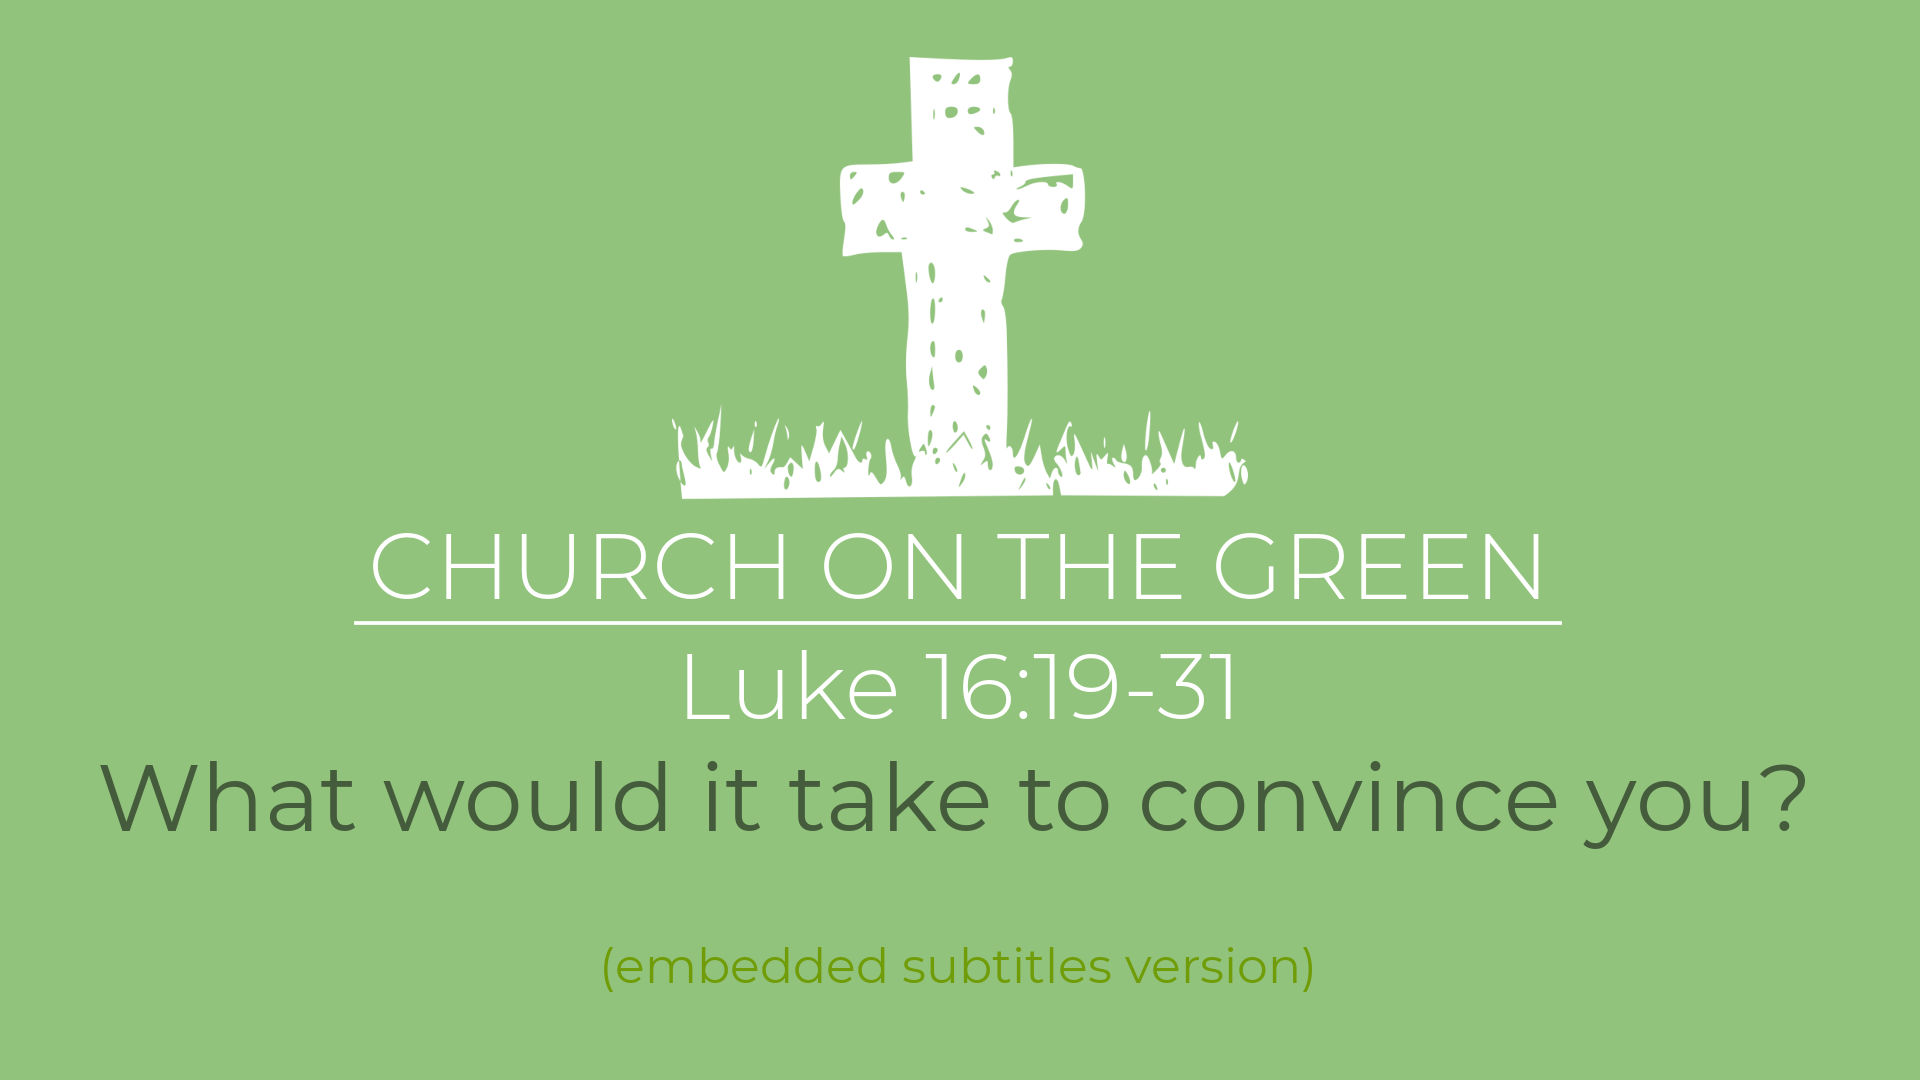 What would it take to convince you? (Luke 16:19-31)